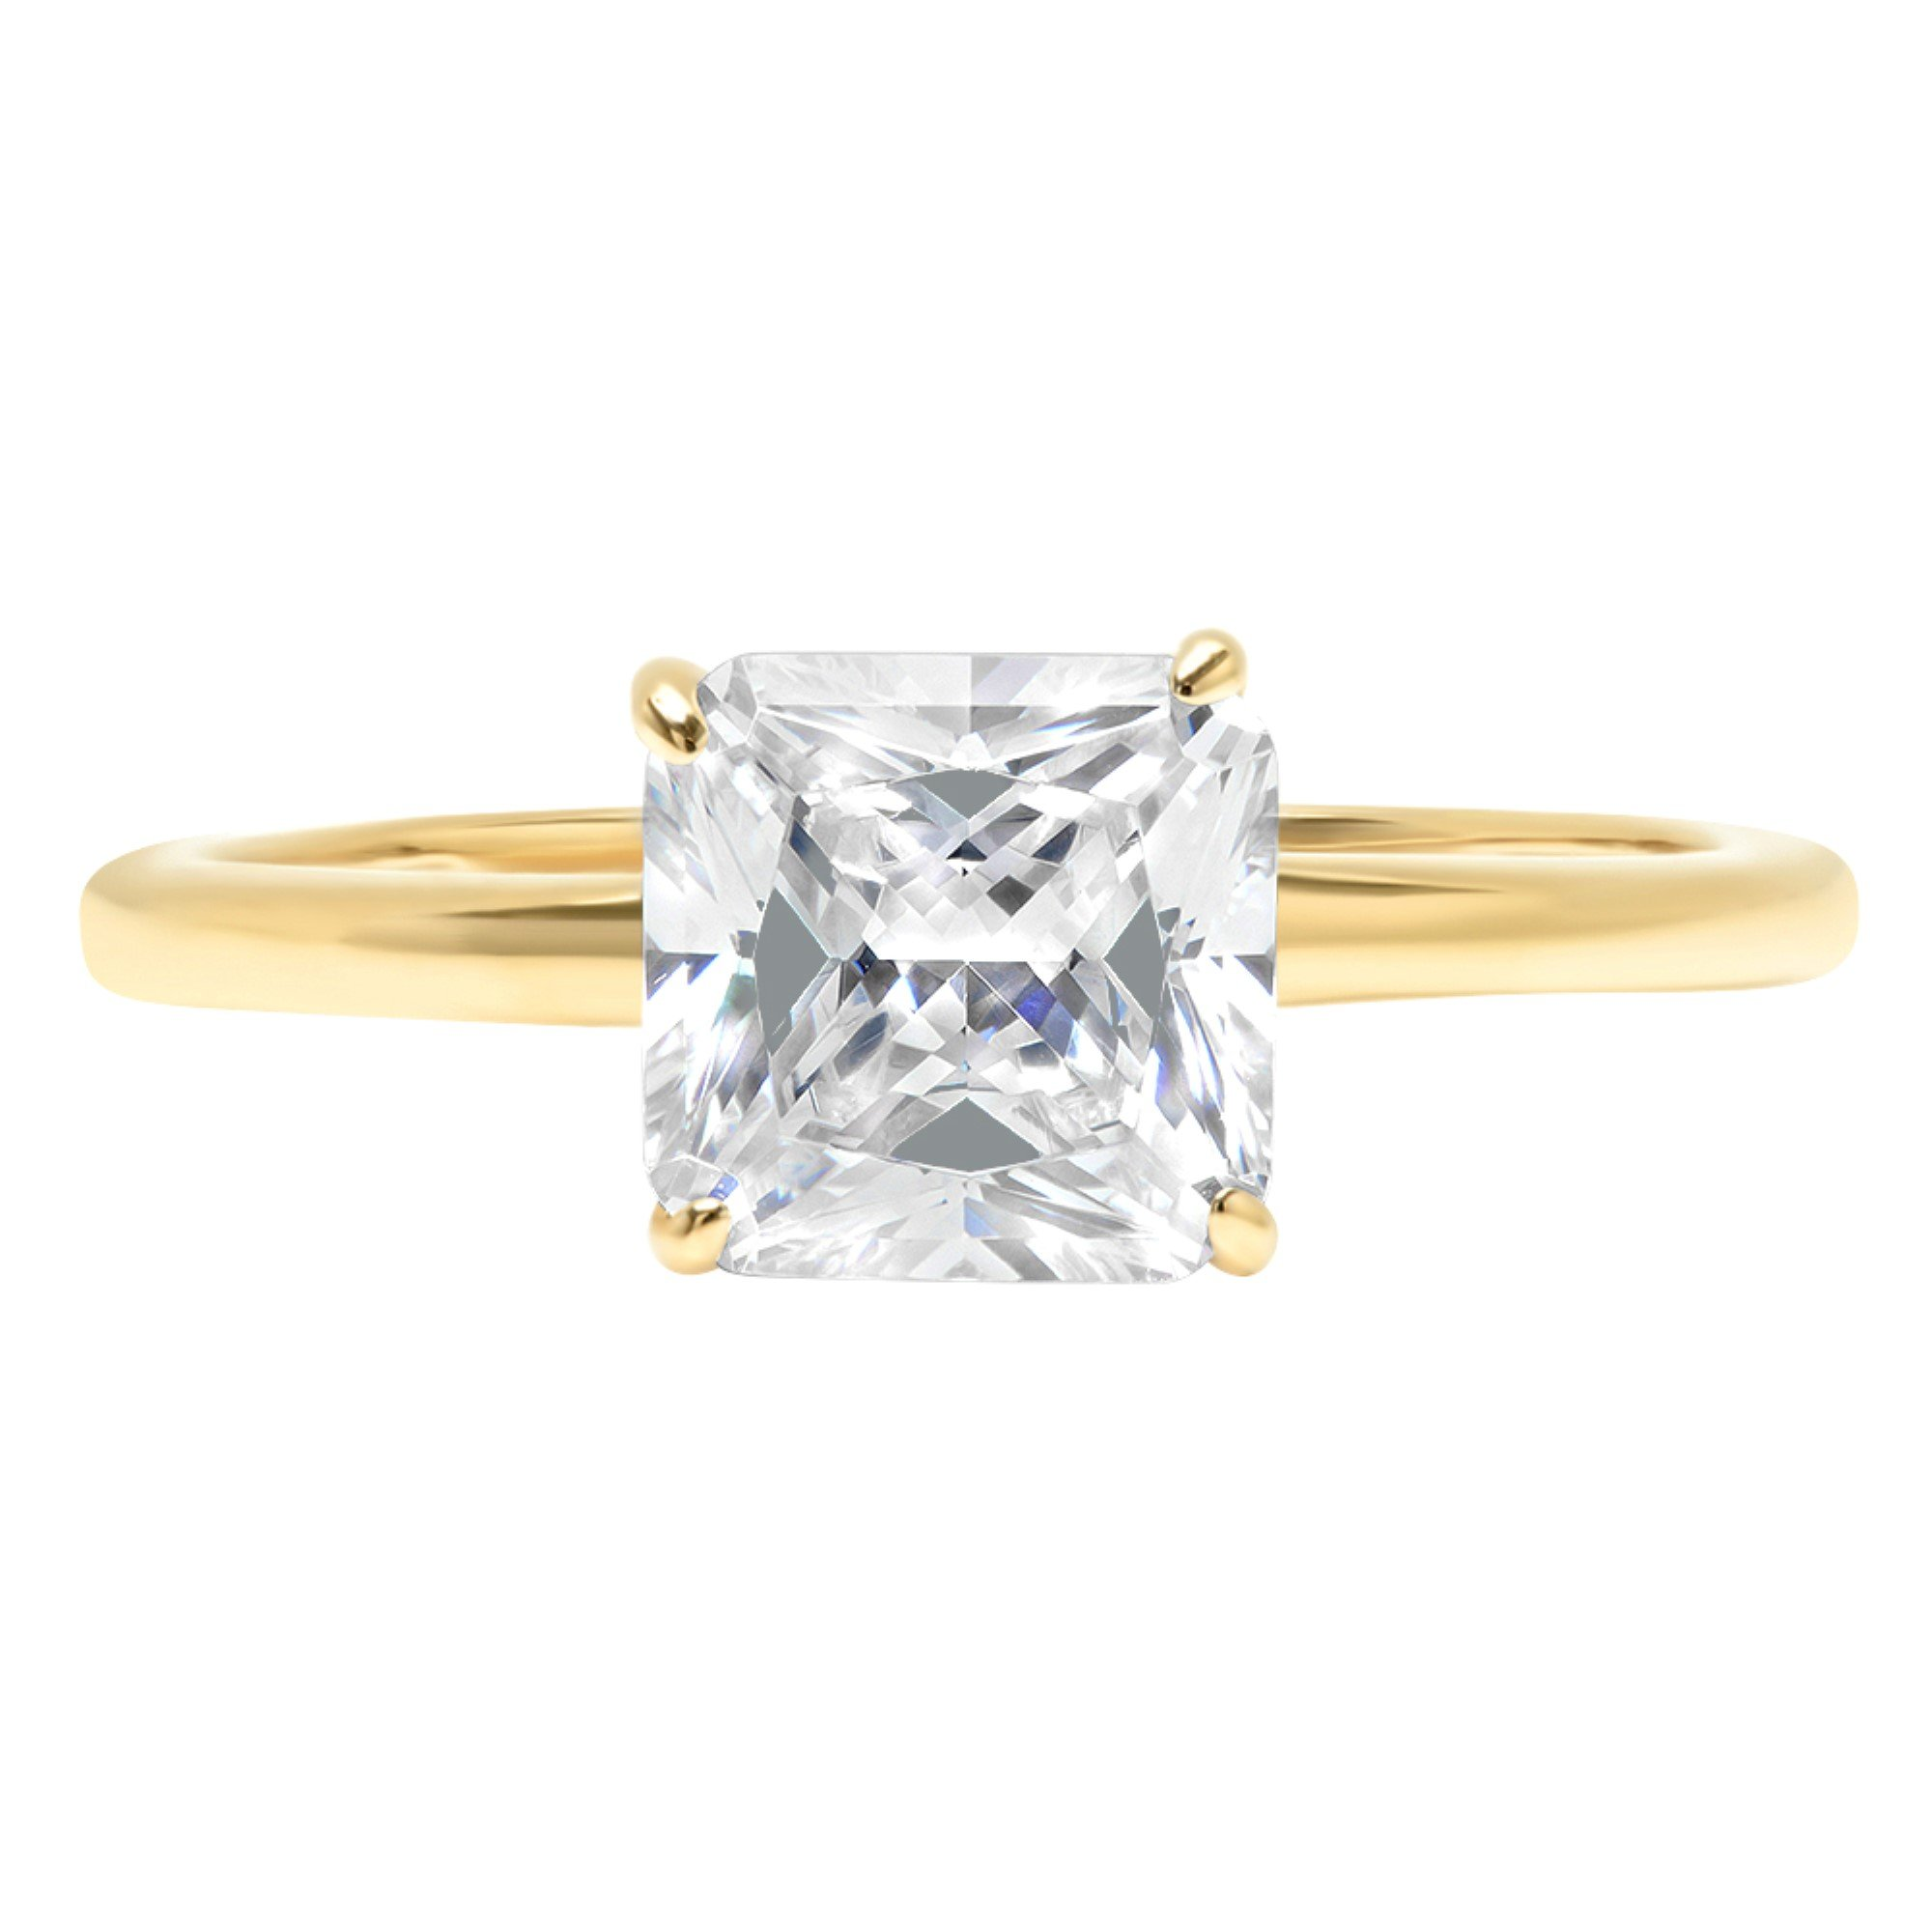 14k Yellow Gold 1.3ct Asscher Brilliant Cut Classic Solitaire Designer Wedding Bridal Statement Anniversary Engagement Promise Ring Solid, 5, 5